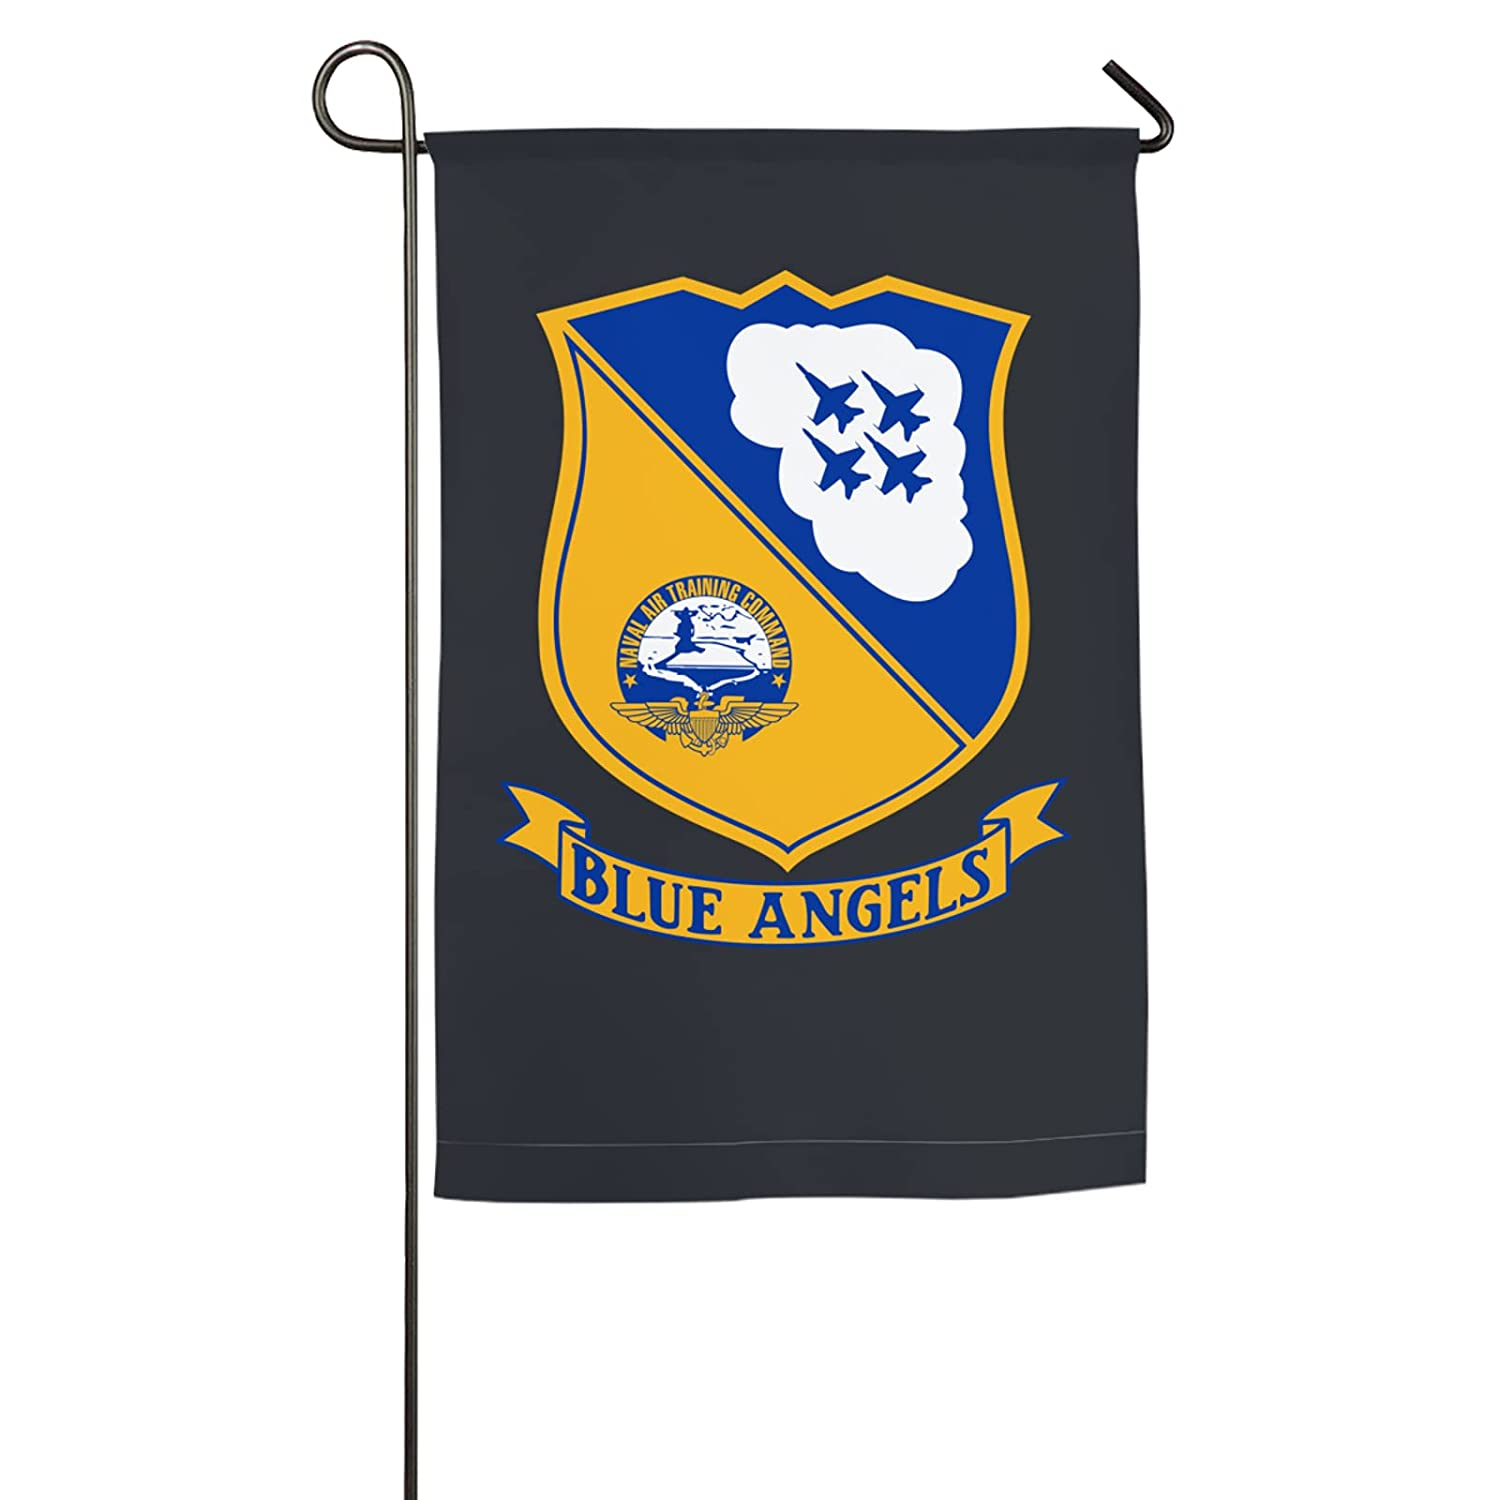 Us Navy Blue Angels Garden Flags Yard Banners Yard Lawns Holiday Decorations Outdoor Flag